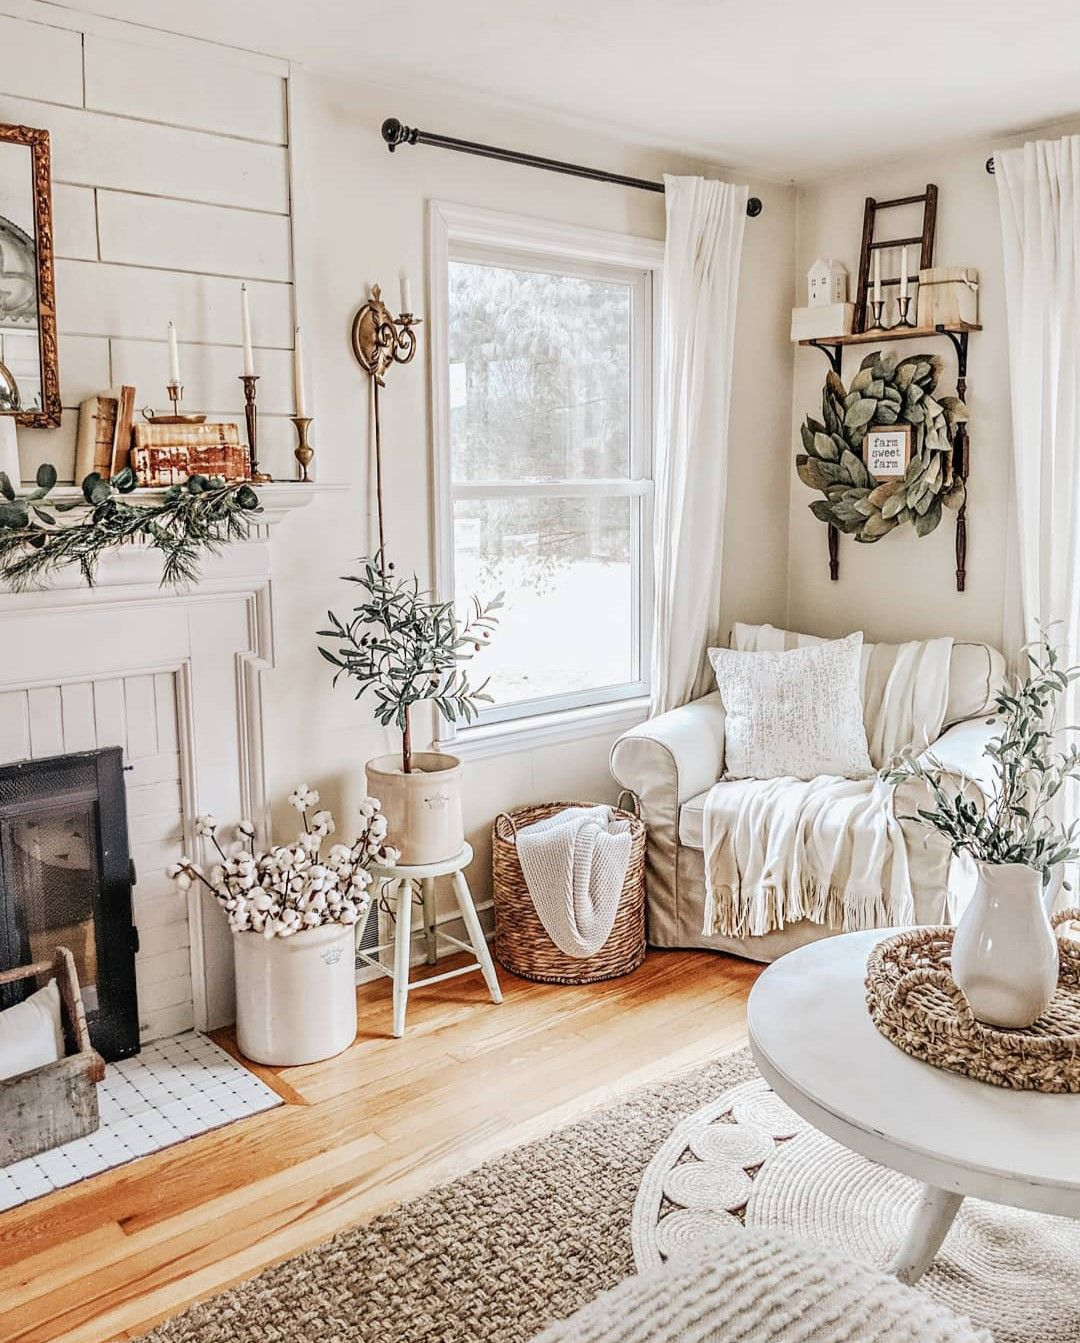 41 Inexpensive Cottage Style Living Room Furniture From: Pinterest // VANESSA RYANNE